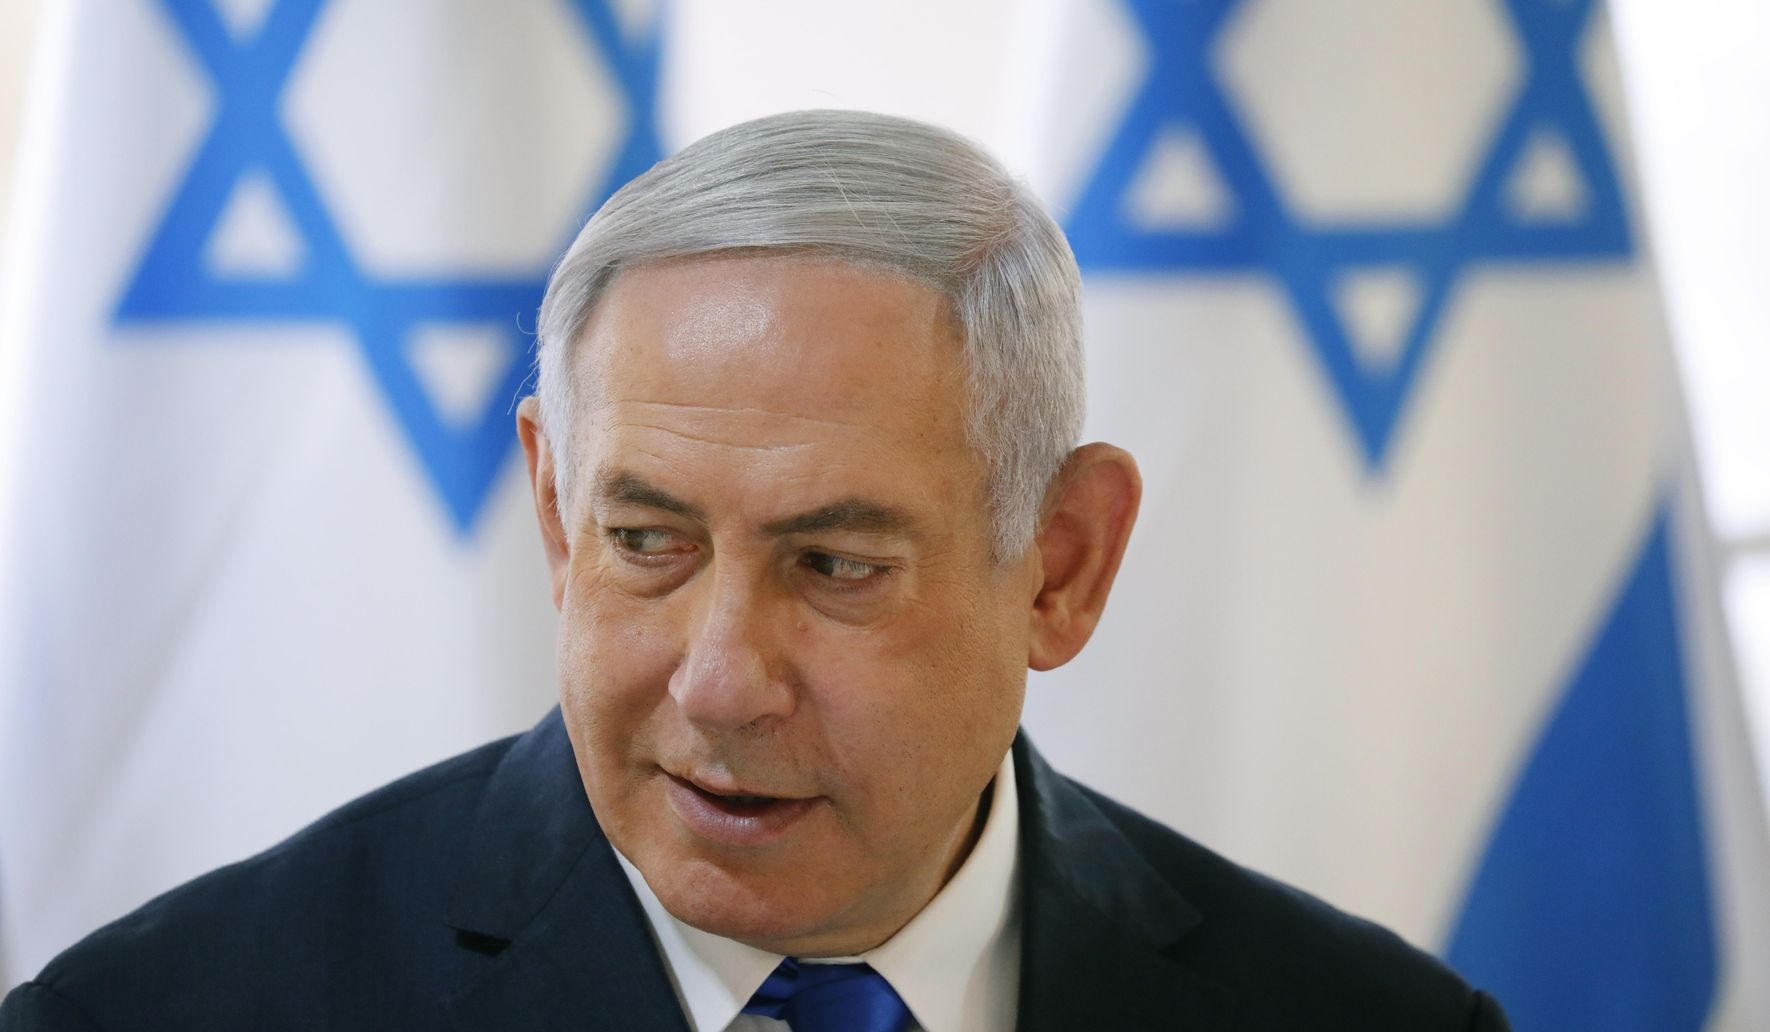 'Groundhog Day': Netanyahu's 'do-over' vote could end his dominance of Israeli politics